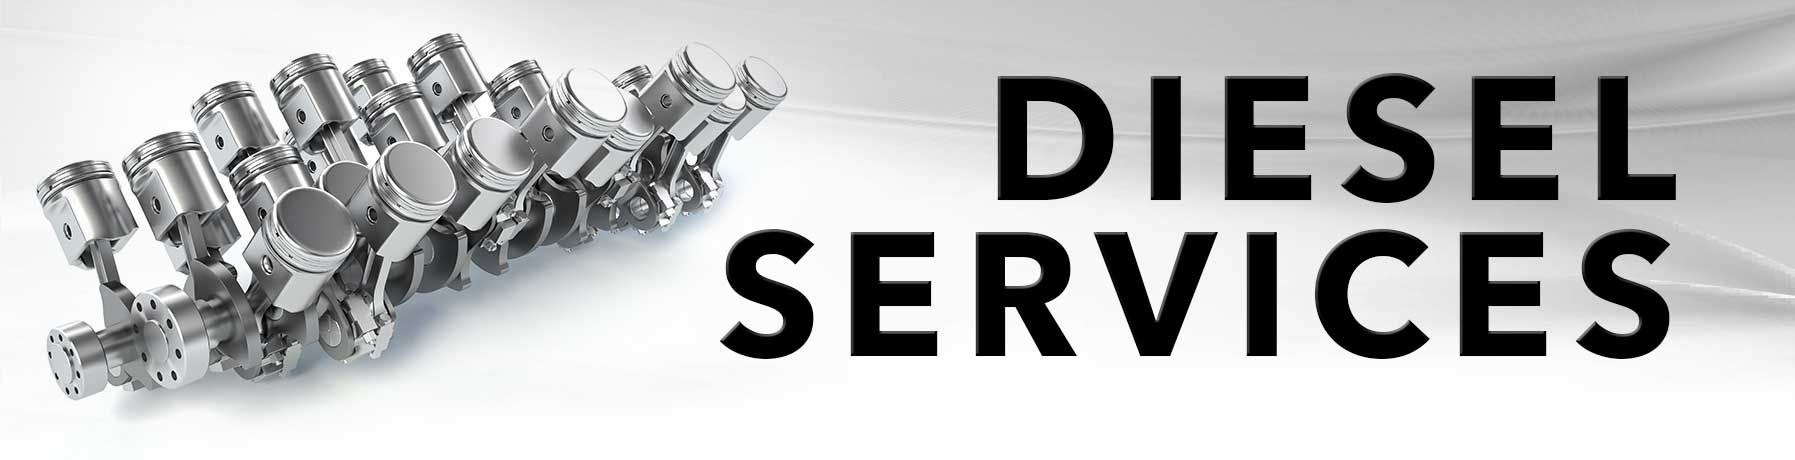 Diesel Repair Service Provided